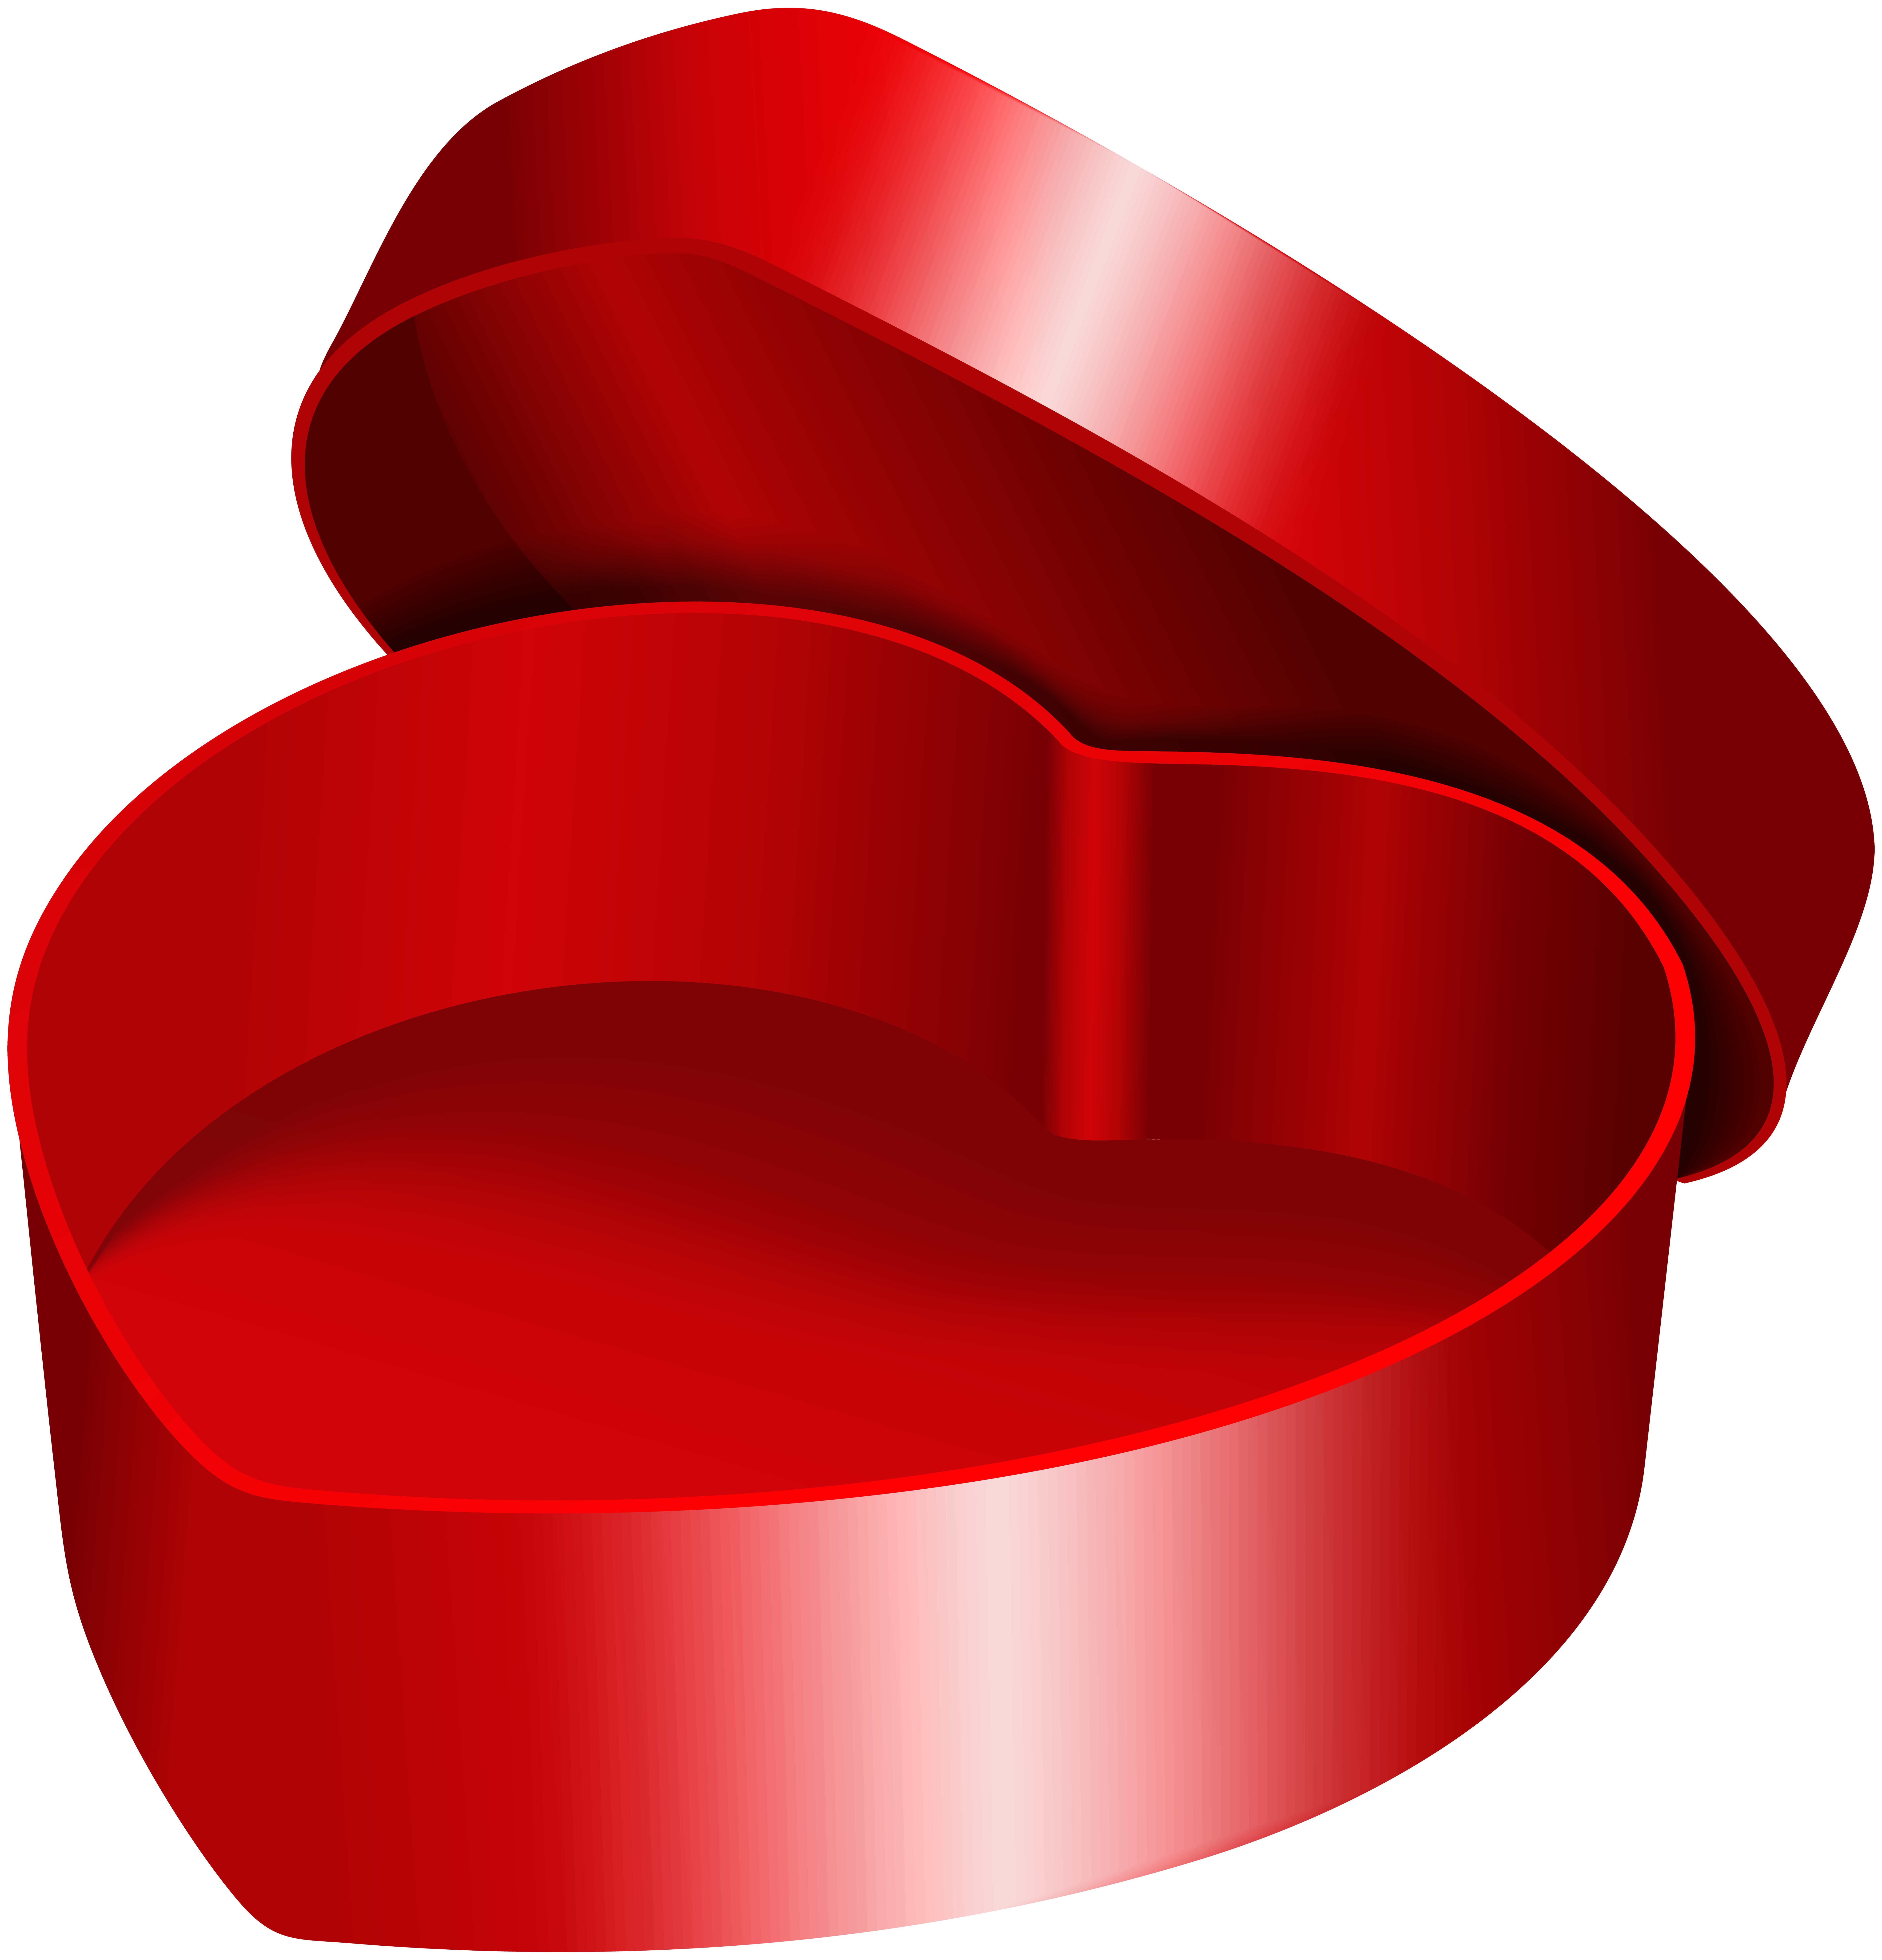 Box red transparent png. Clipart cookies heart